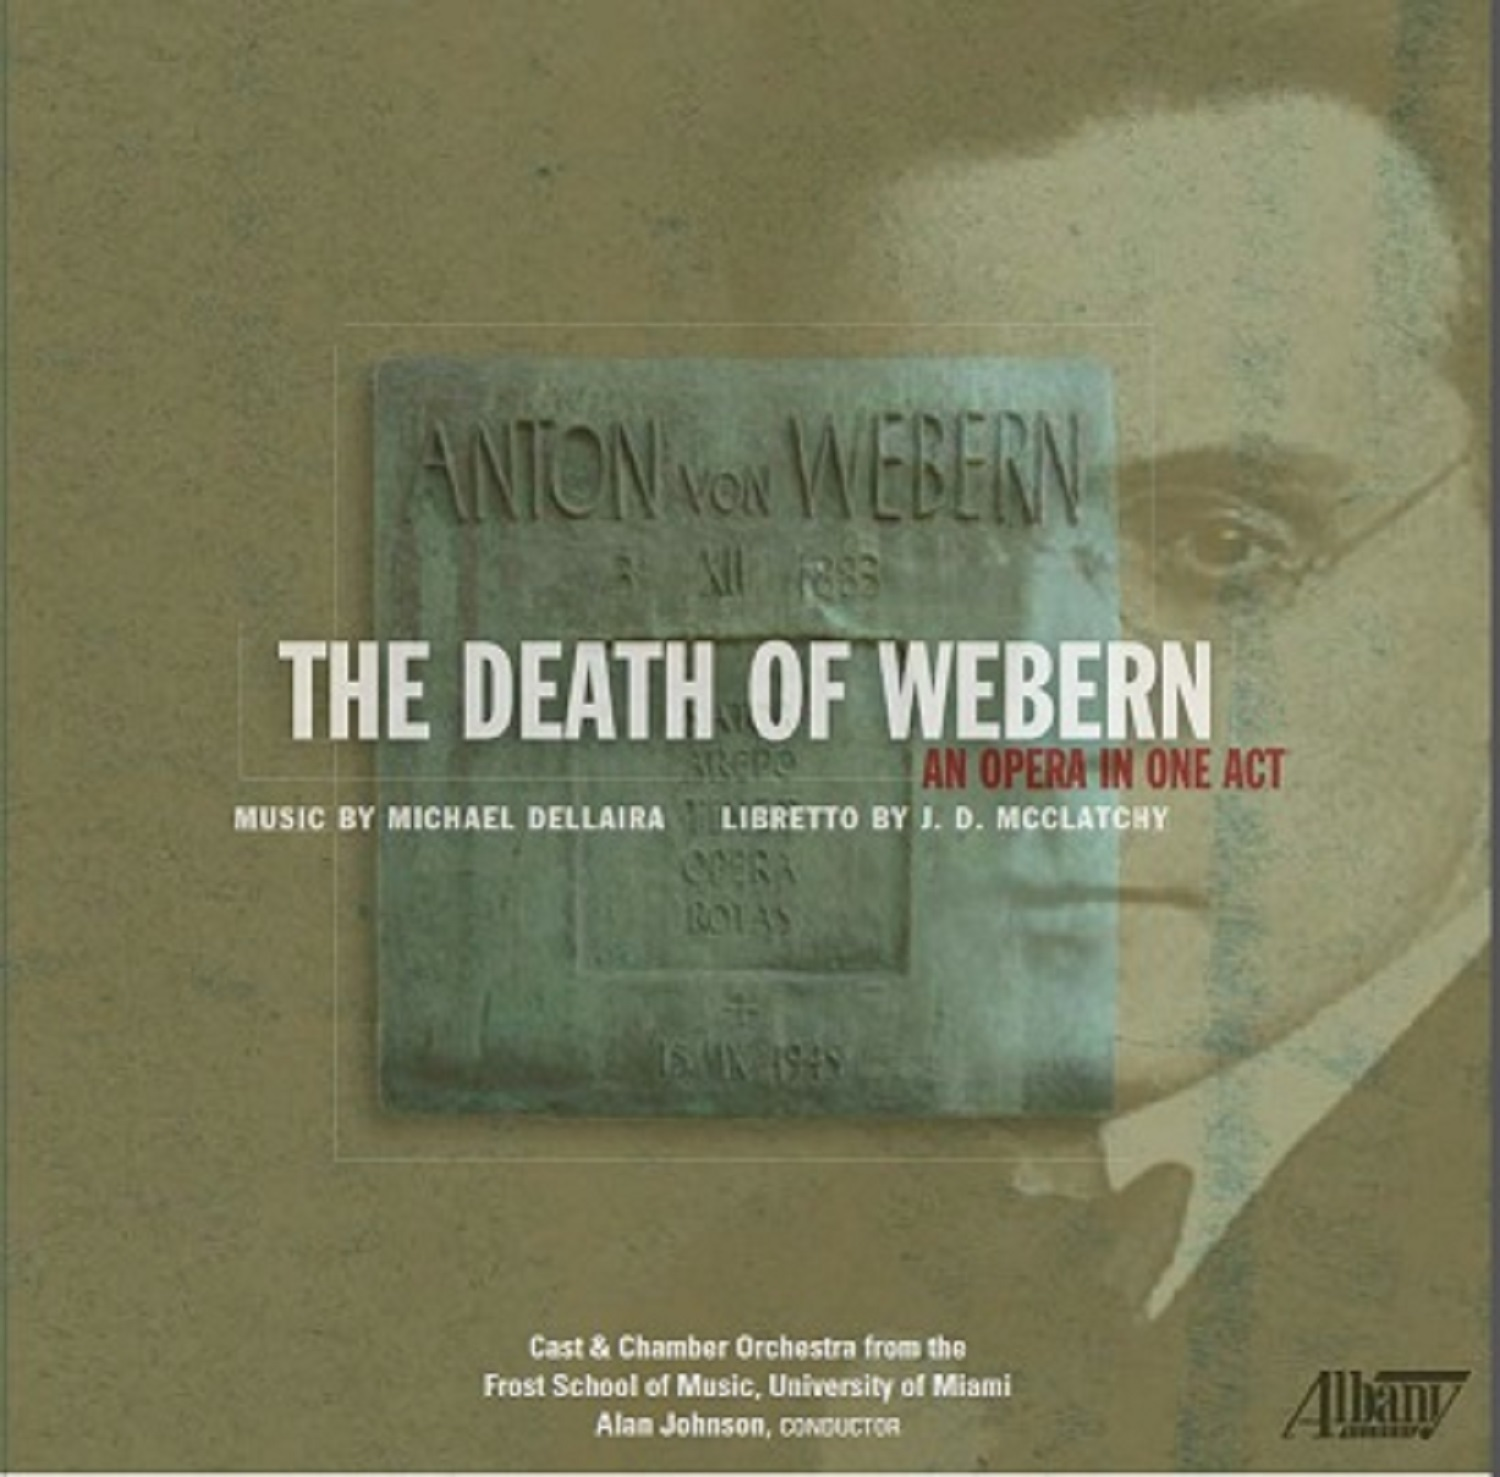 thedeathofweberncover.jpg